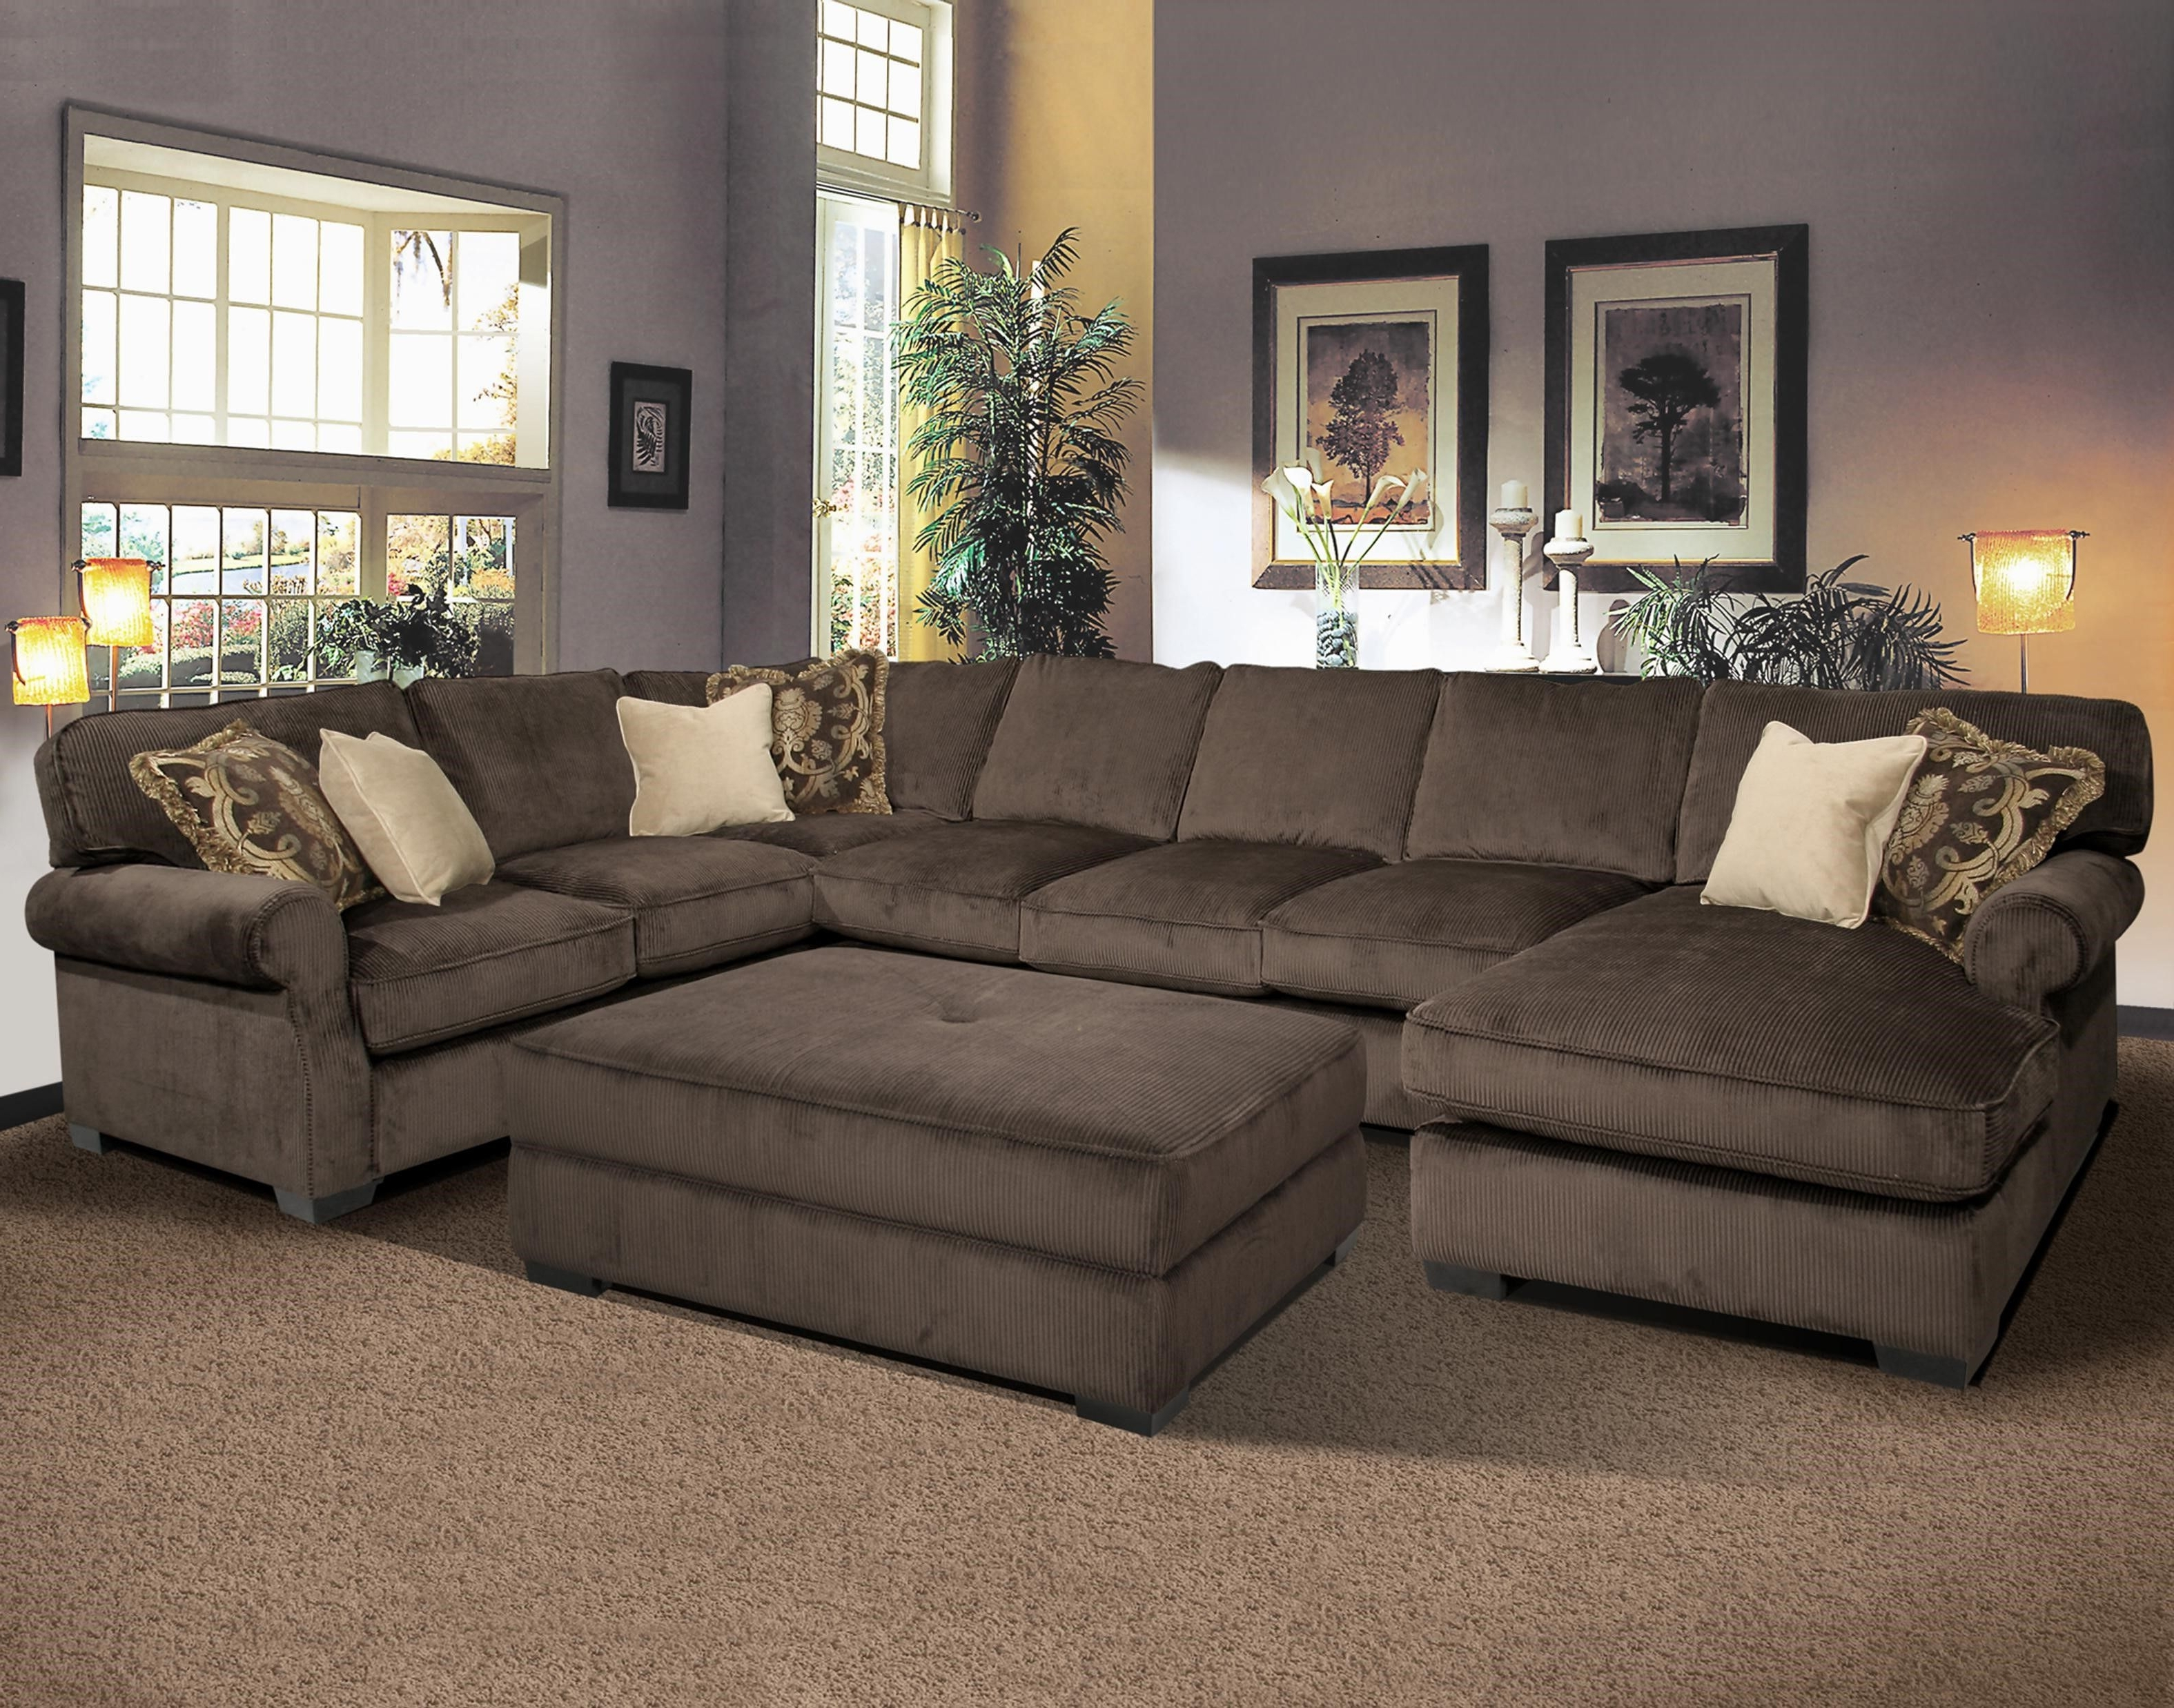 Well Known Comfortable Living Room Sofas Design With Elegant Overstuffed Inside Tulsa Sectional Sofas (View 4 of 20)